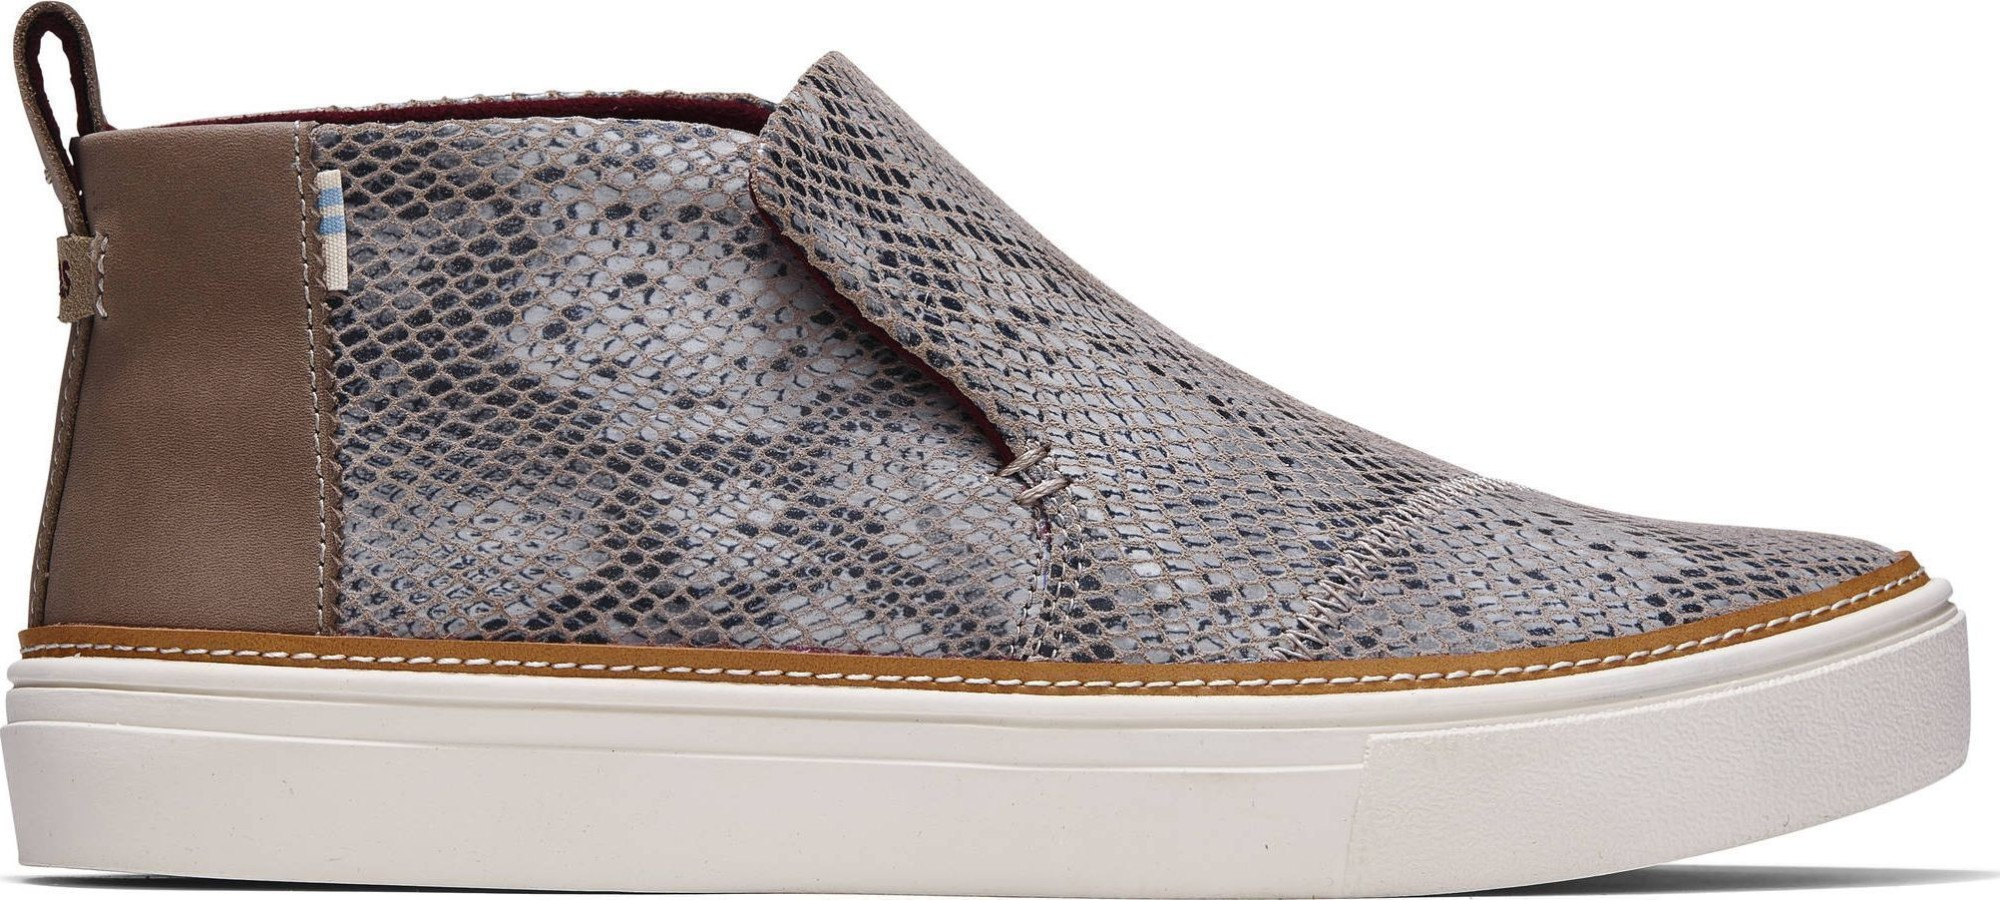 TOMS Snake Printed Suede Women's Paxton Slip-On Cobblestone 37,5